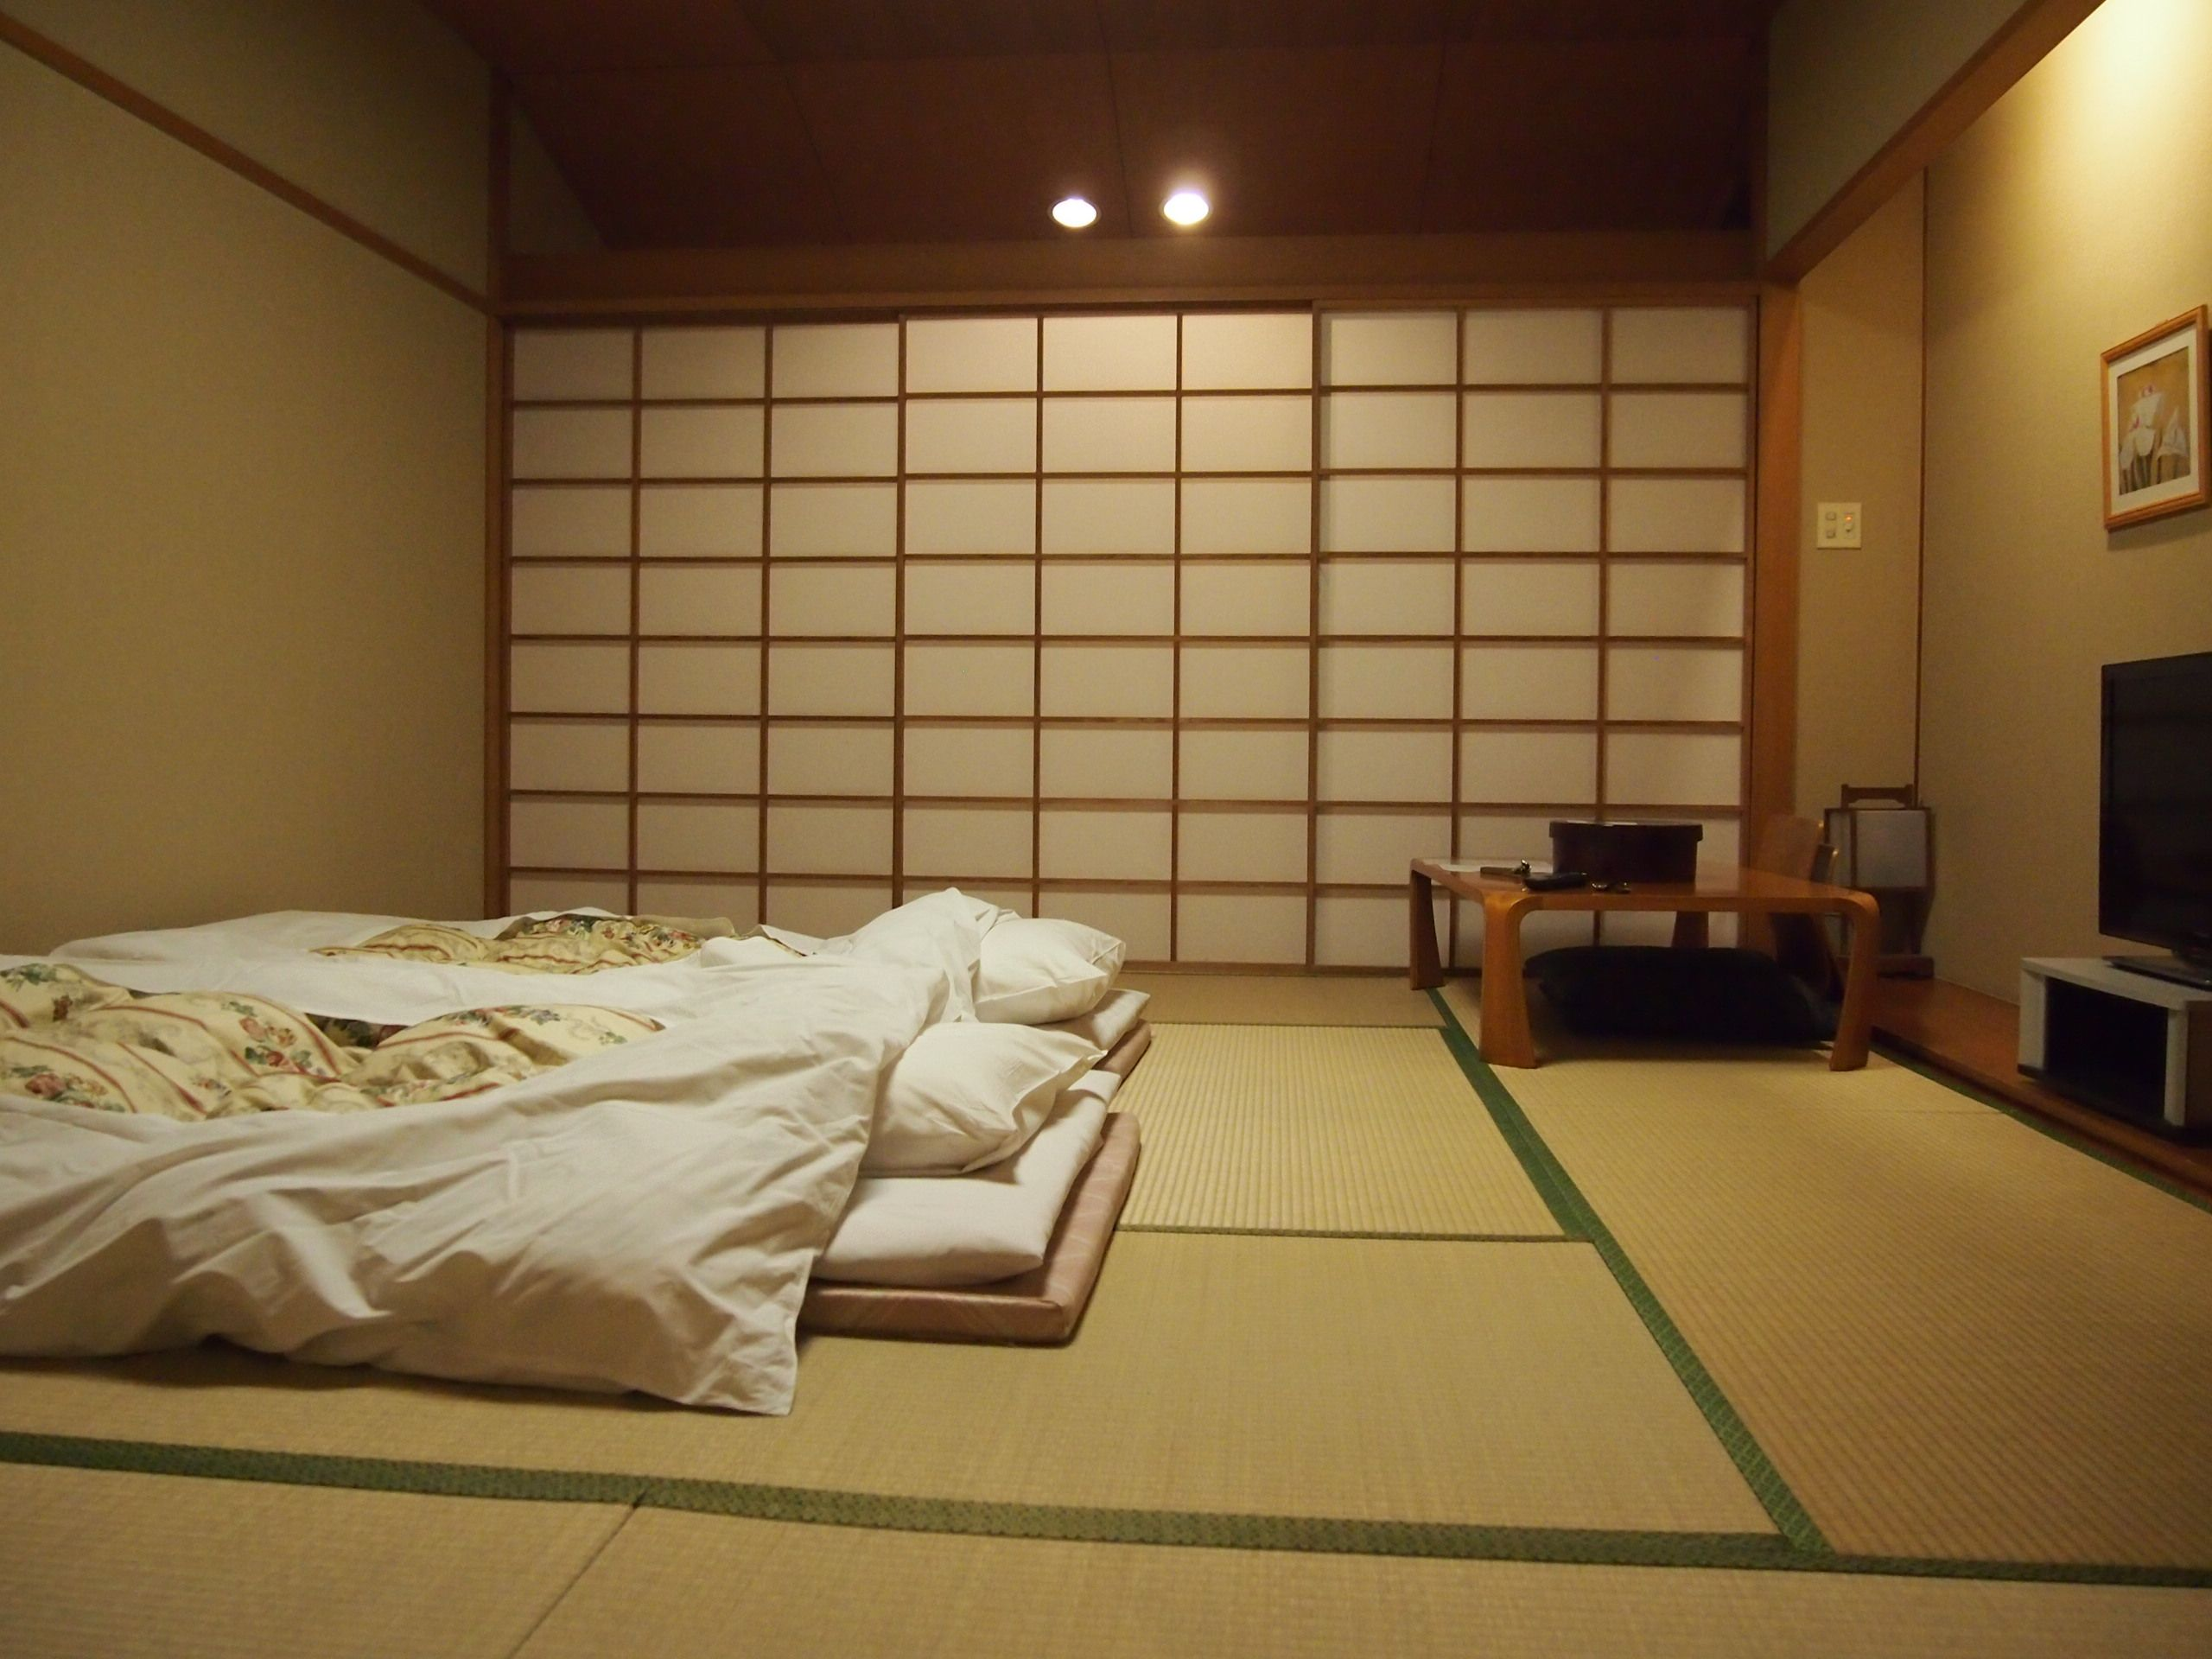 Brilliant Japanese Bedroom Google Search Ideas For The House Interior Design Ideas Philsoteloinfo